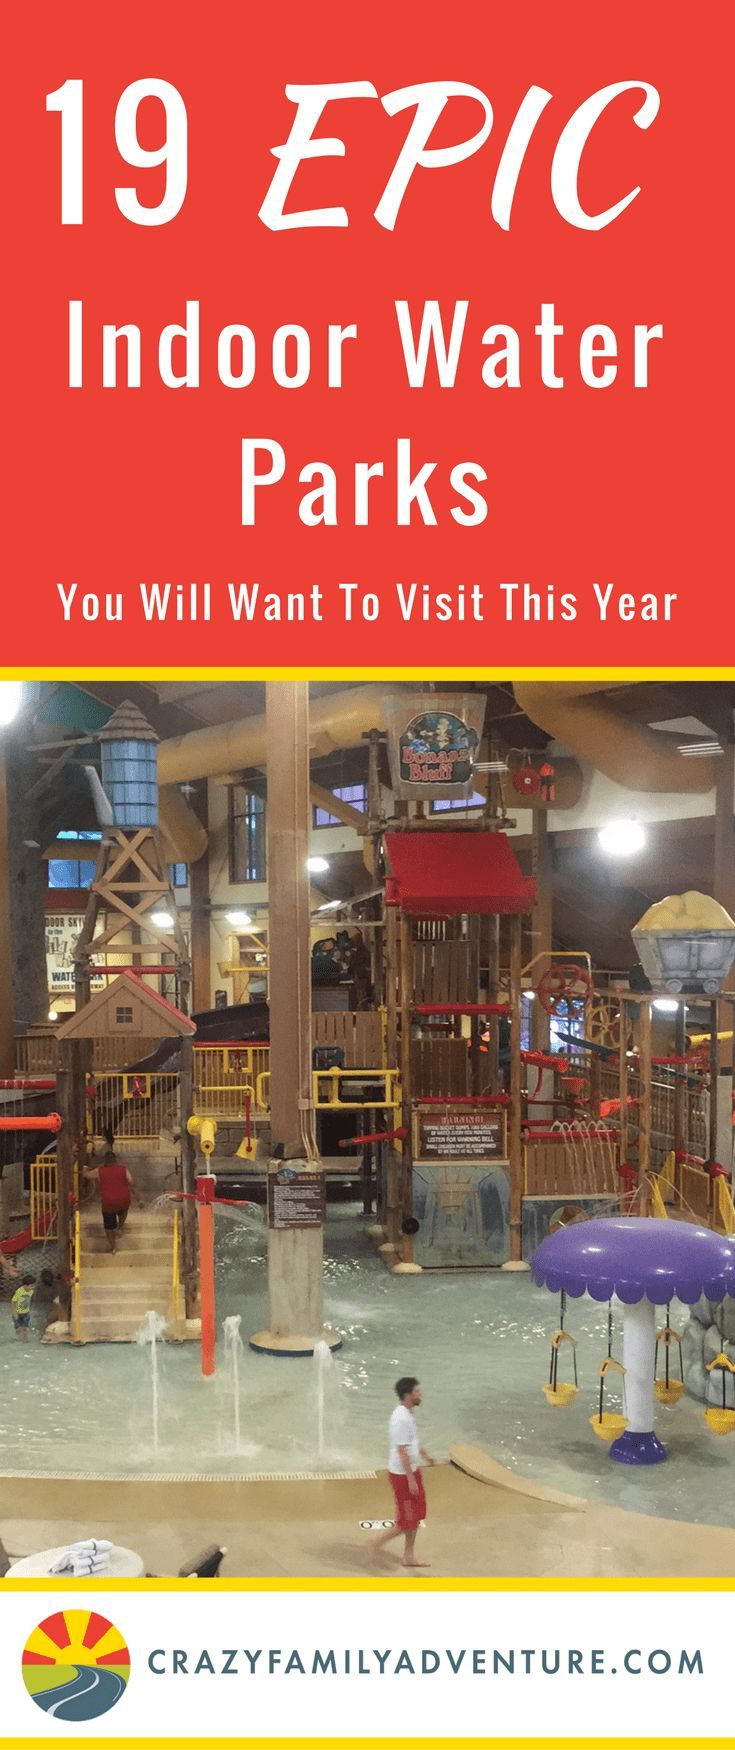 Indoor Water Park fun!! Your family will have a blast at any of these 19 epic indoor water parks. Thrilling slides, wave pools, & water play structures equal tons of #indoor #fun. #family  #travel #bucketlist #vacation #waterpark